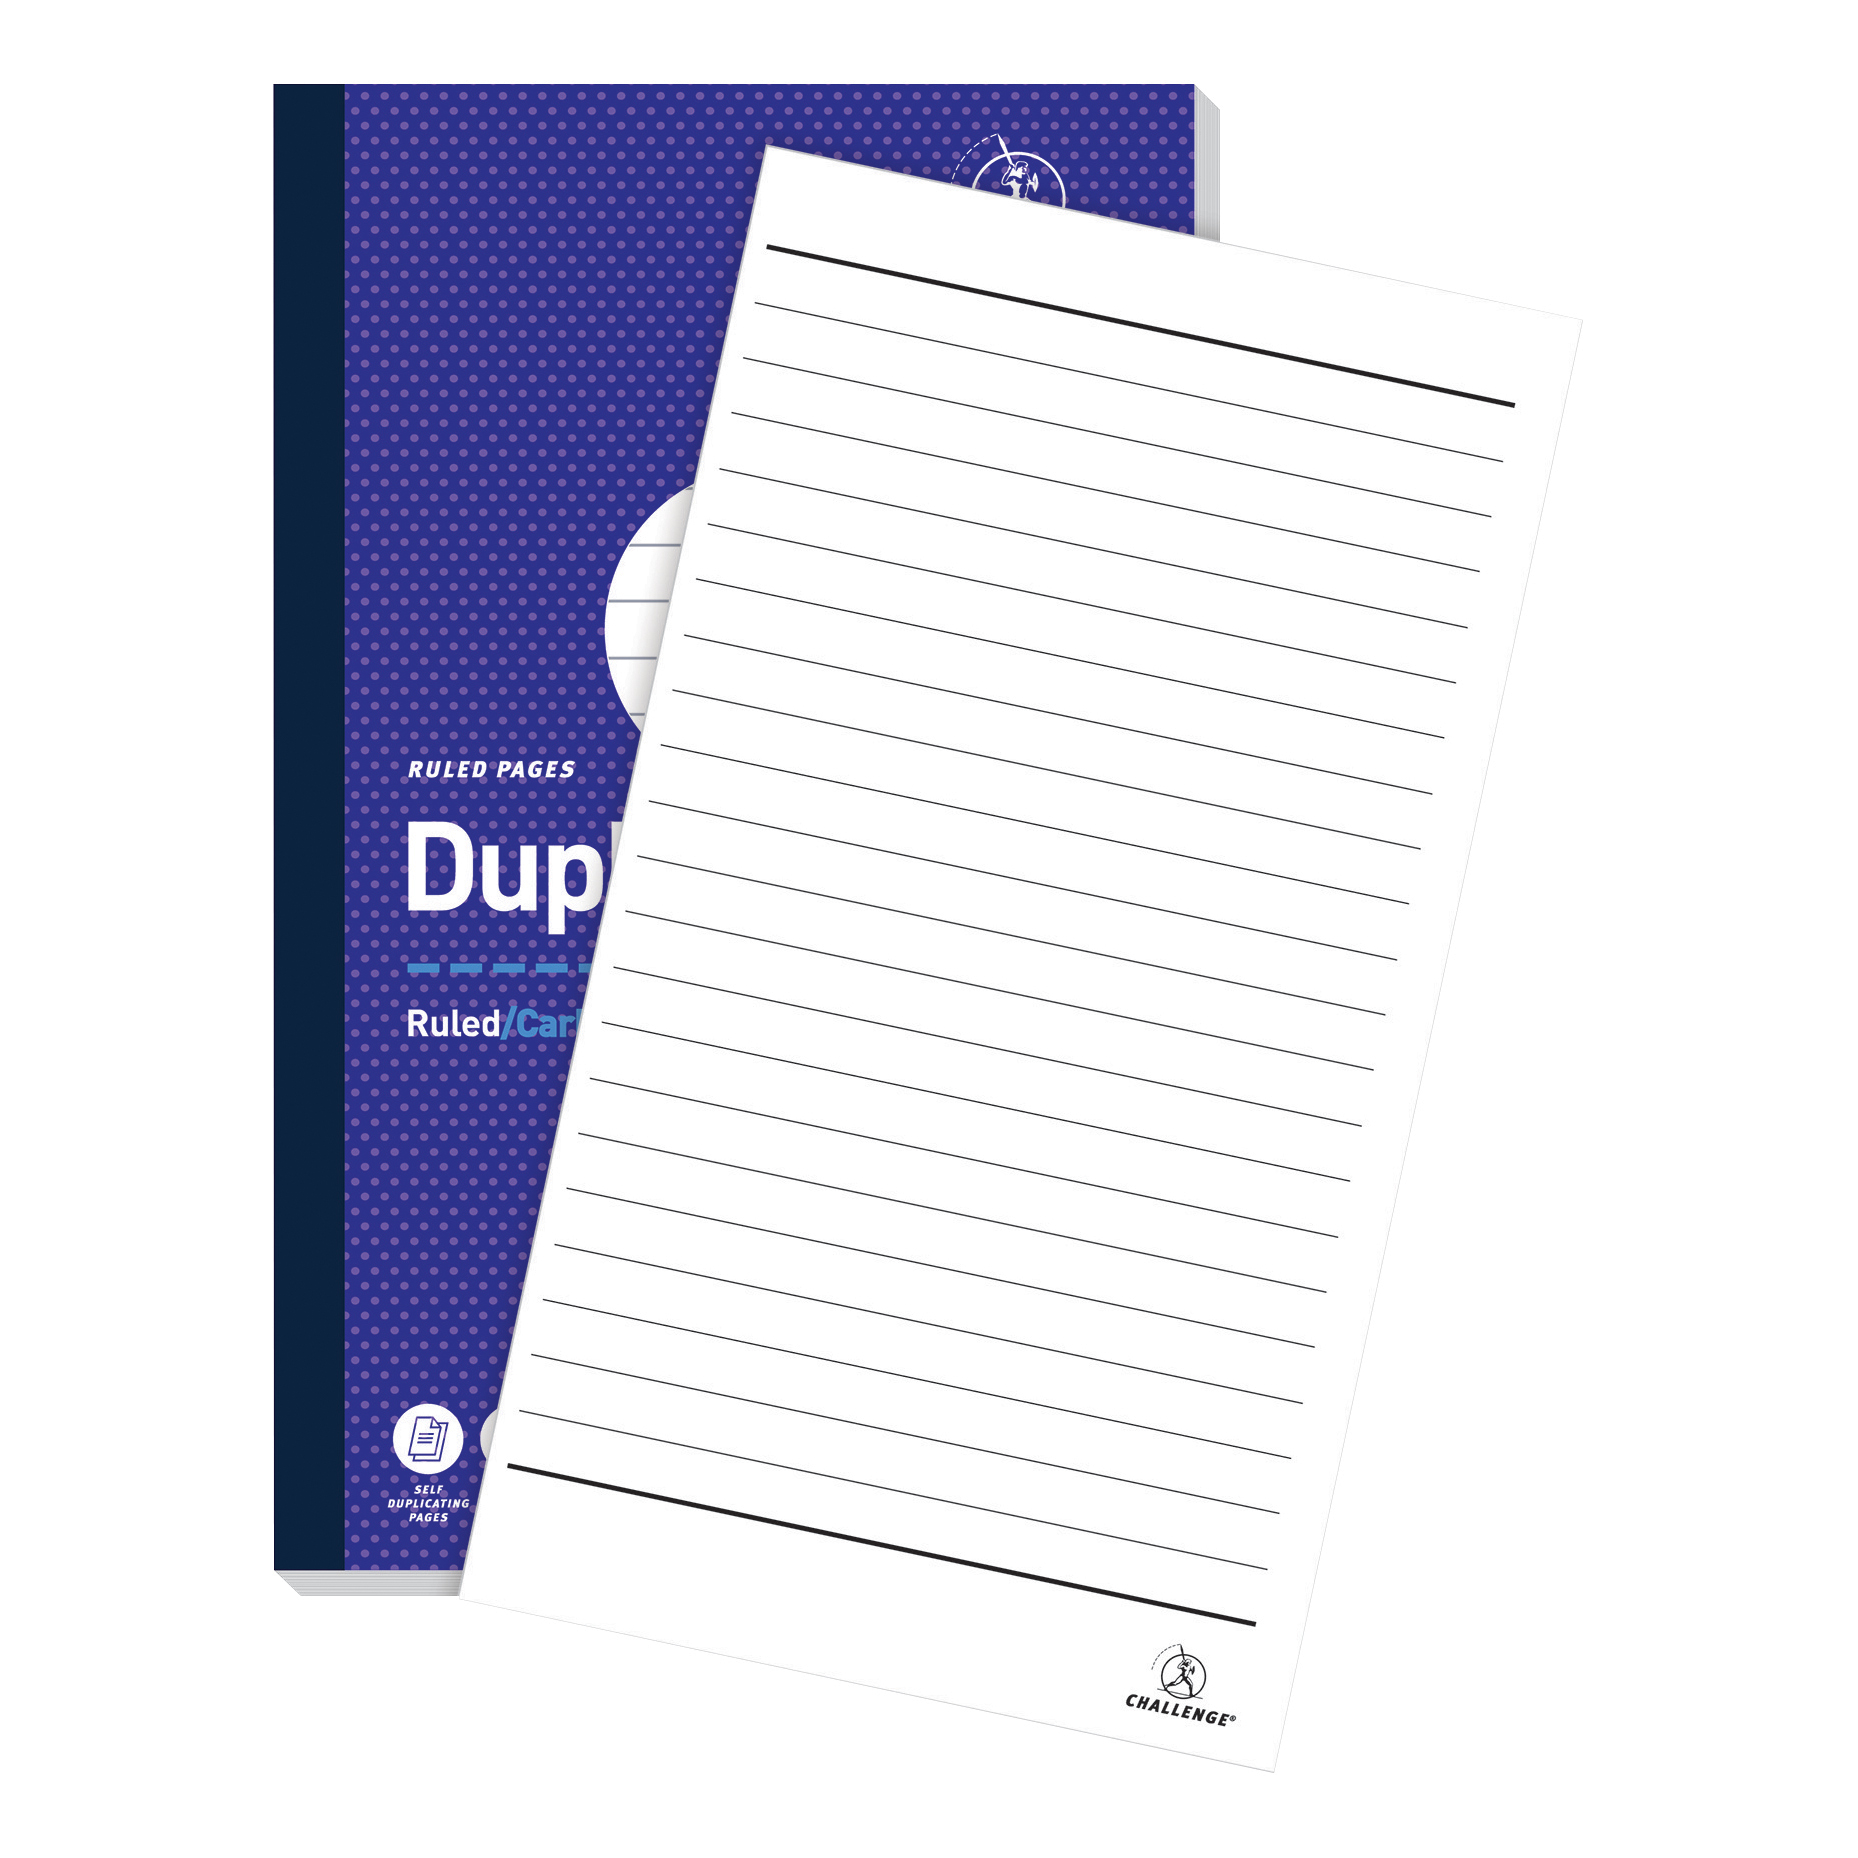 Duplicate Challenge Duplicate Book Carbonless Ruled 100 Sets 210x130mm Ref 100080458 Pack 5